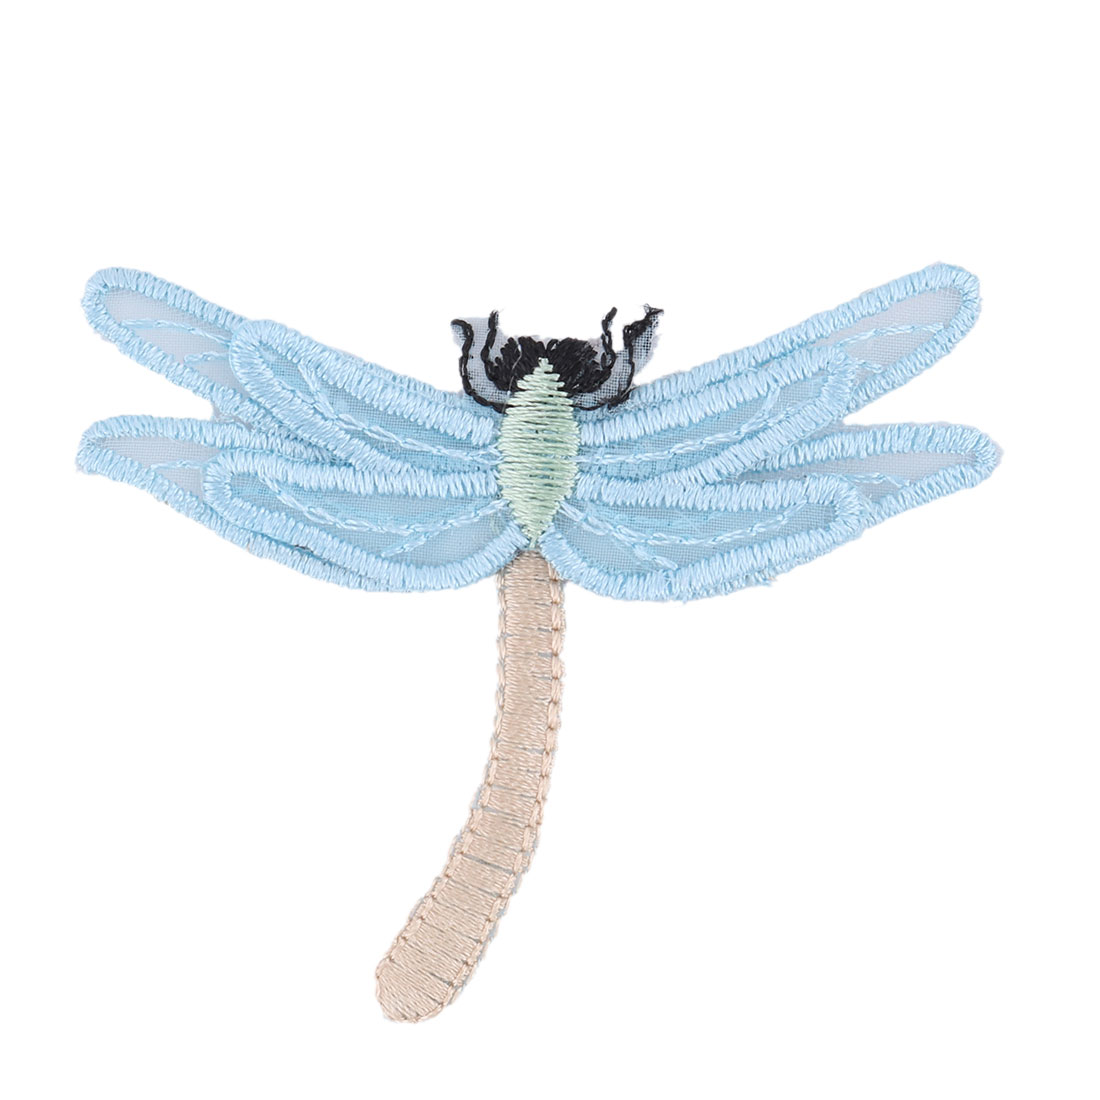 Home Organza Dragonfly Design Embroidered DIY Clothes Decoration Lace Applique Blue